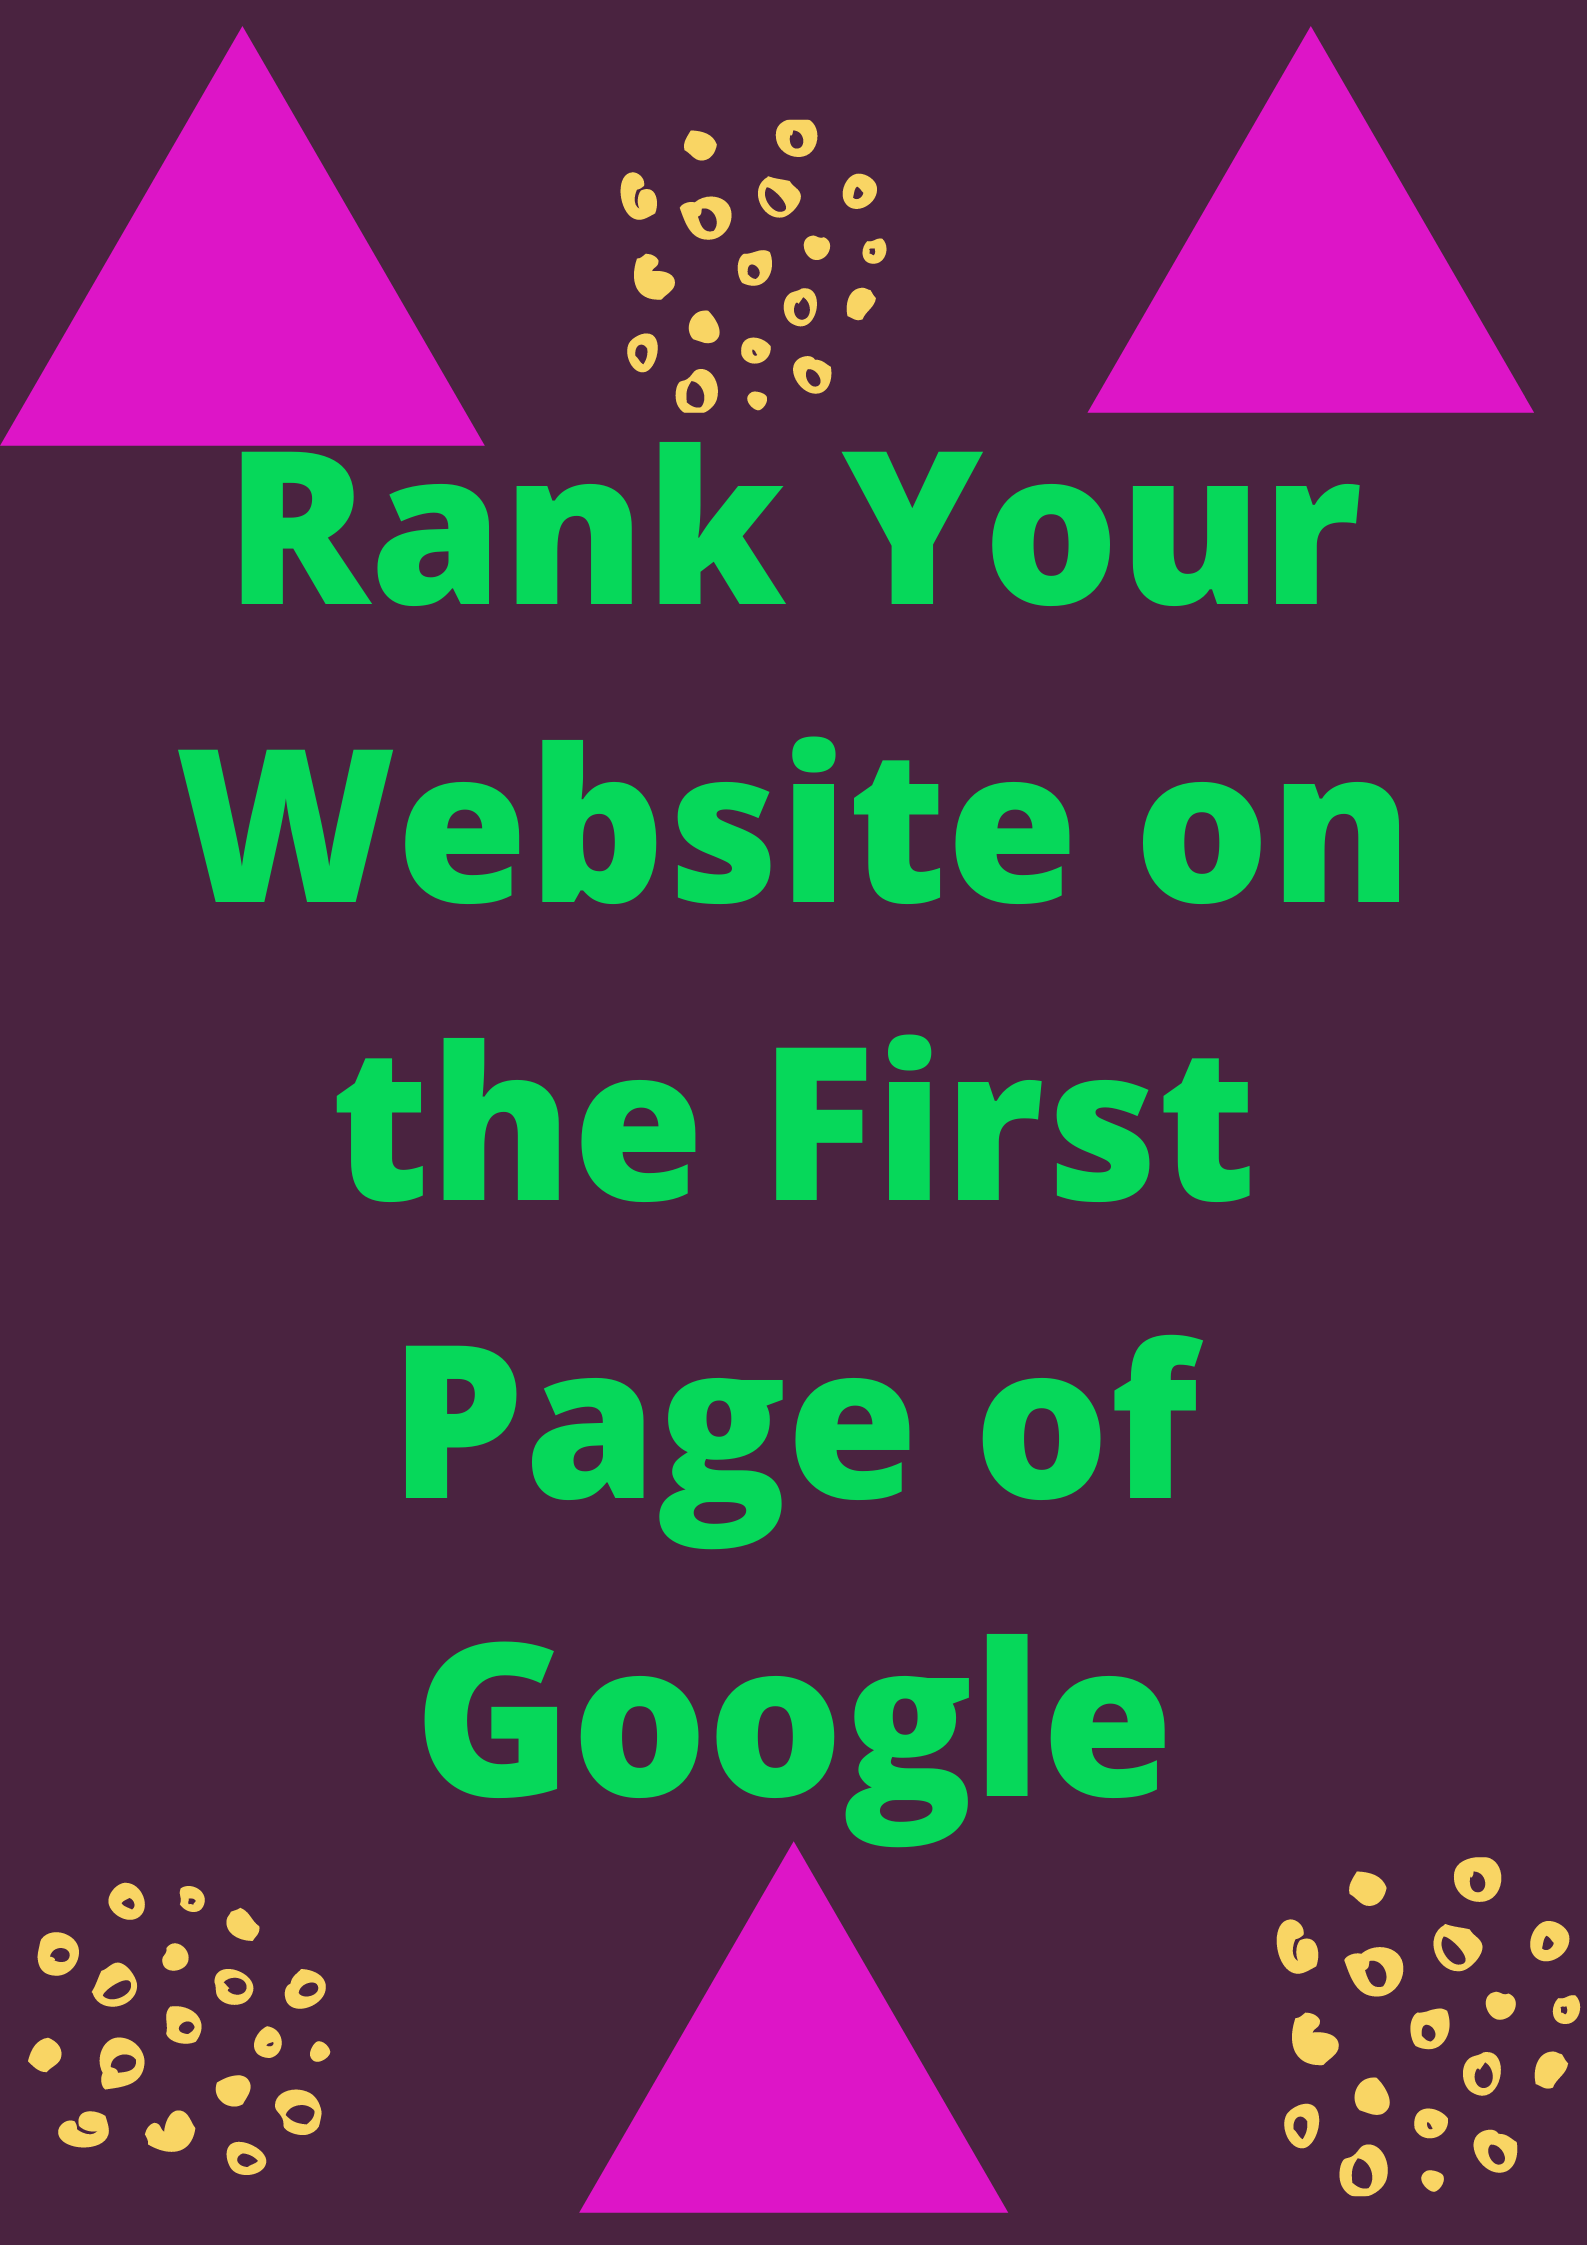 I will DO Rank Your Website on the First Page of Google FAST